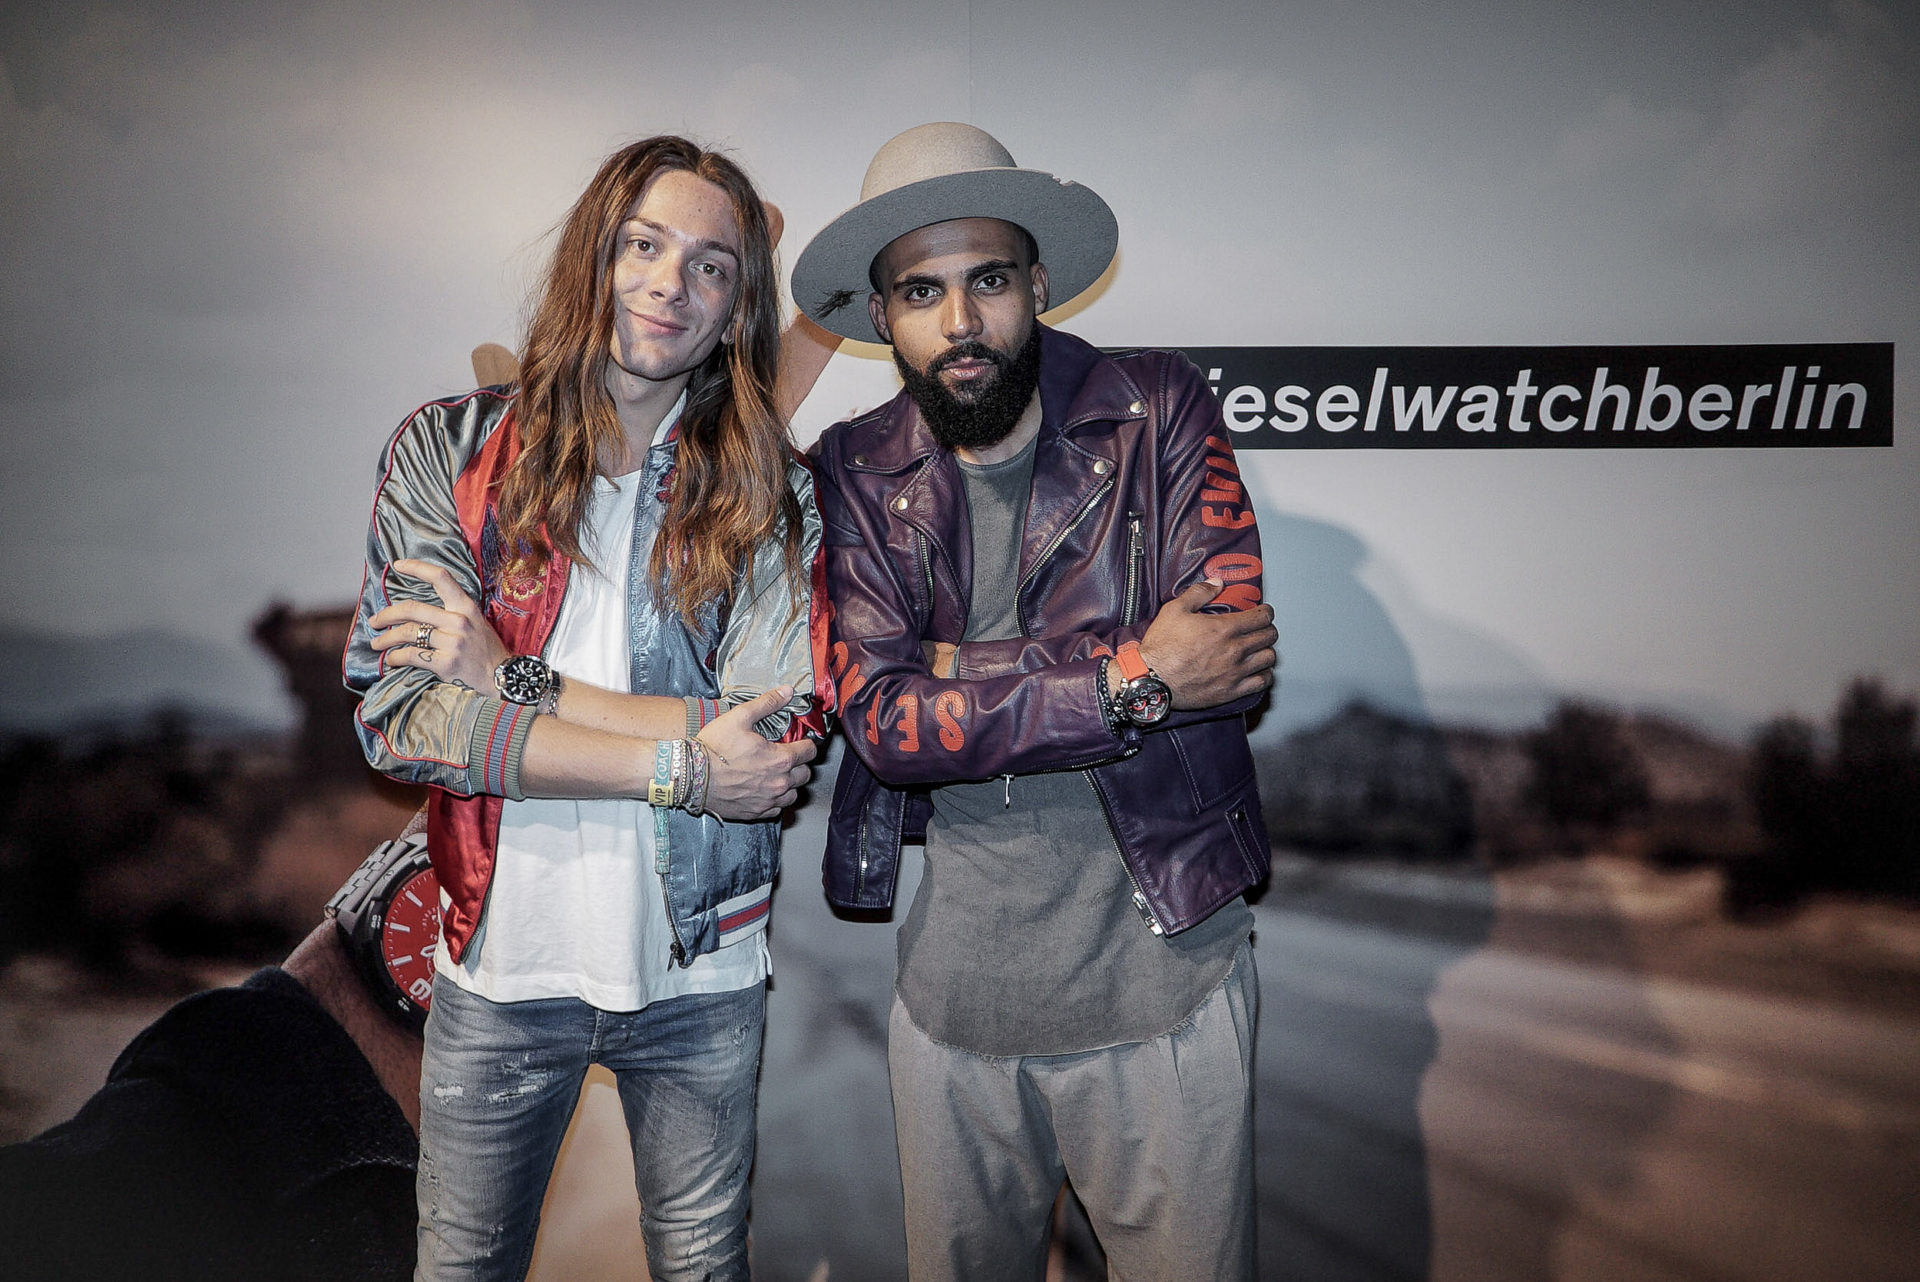 #dieselwatch Event Berlin